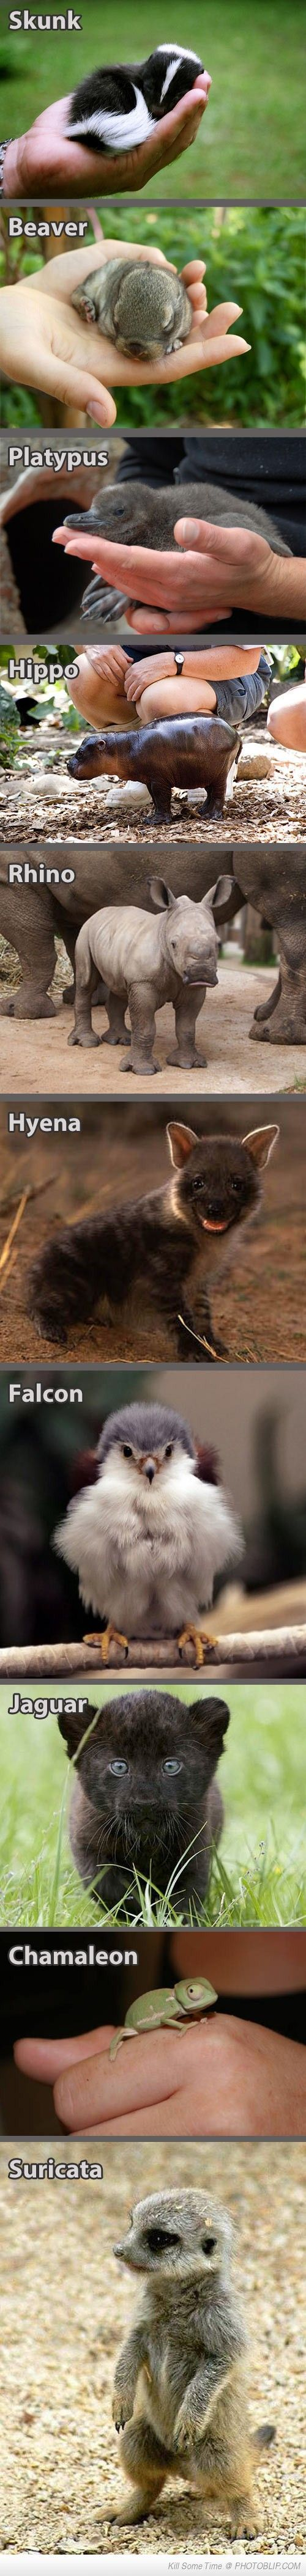 The baby falcon and baby chameleon made me laugh! Cuteness overload!!